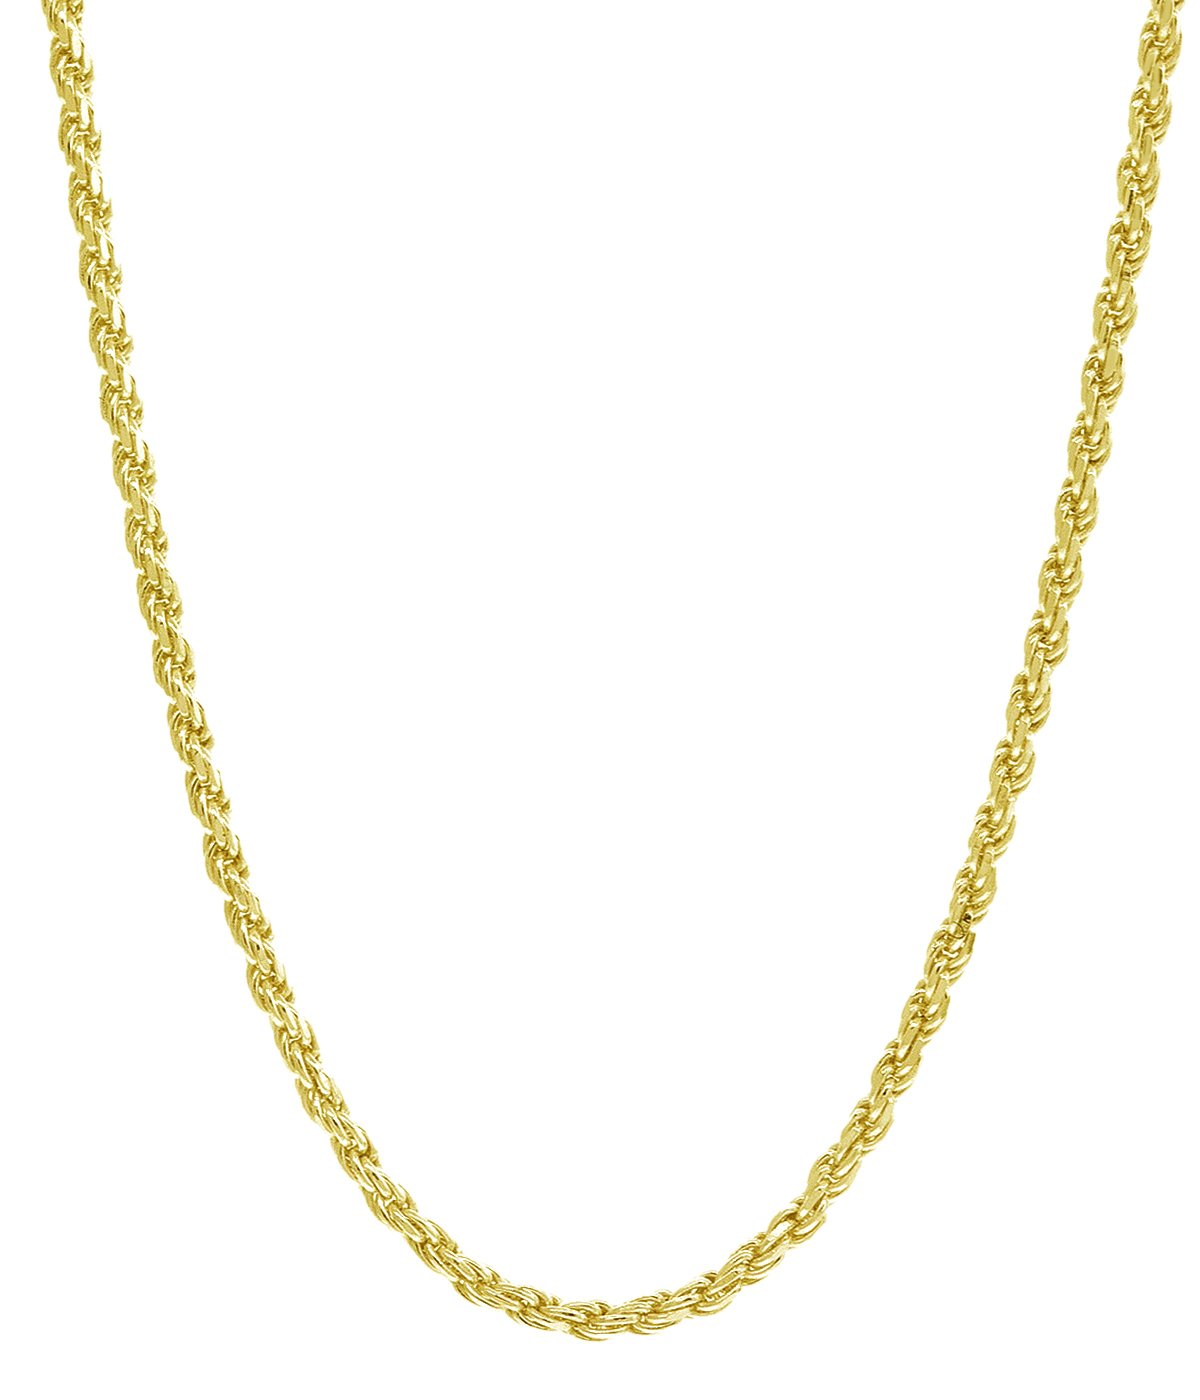 18K Yellow Gold 1.5MM Diamond Cut Rope Chain Necklace - Made in Italy -16''-24'' (20)